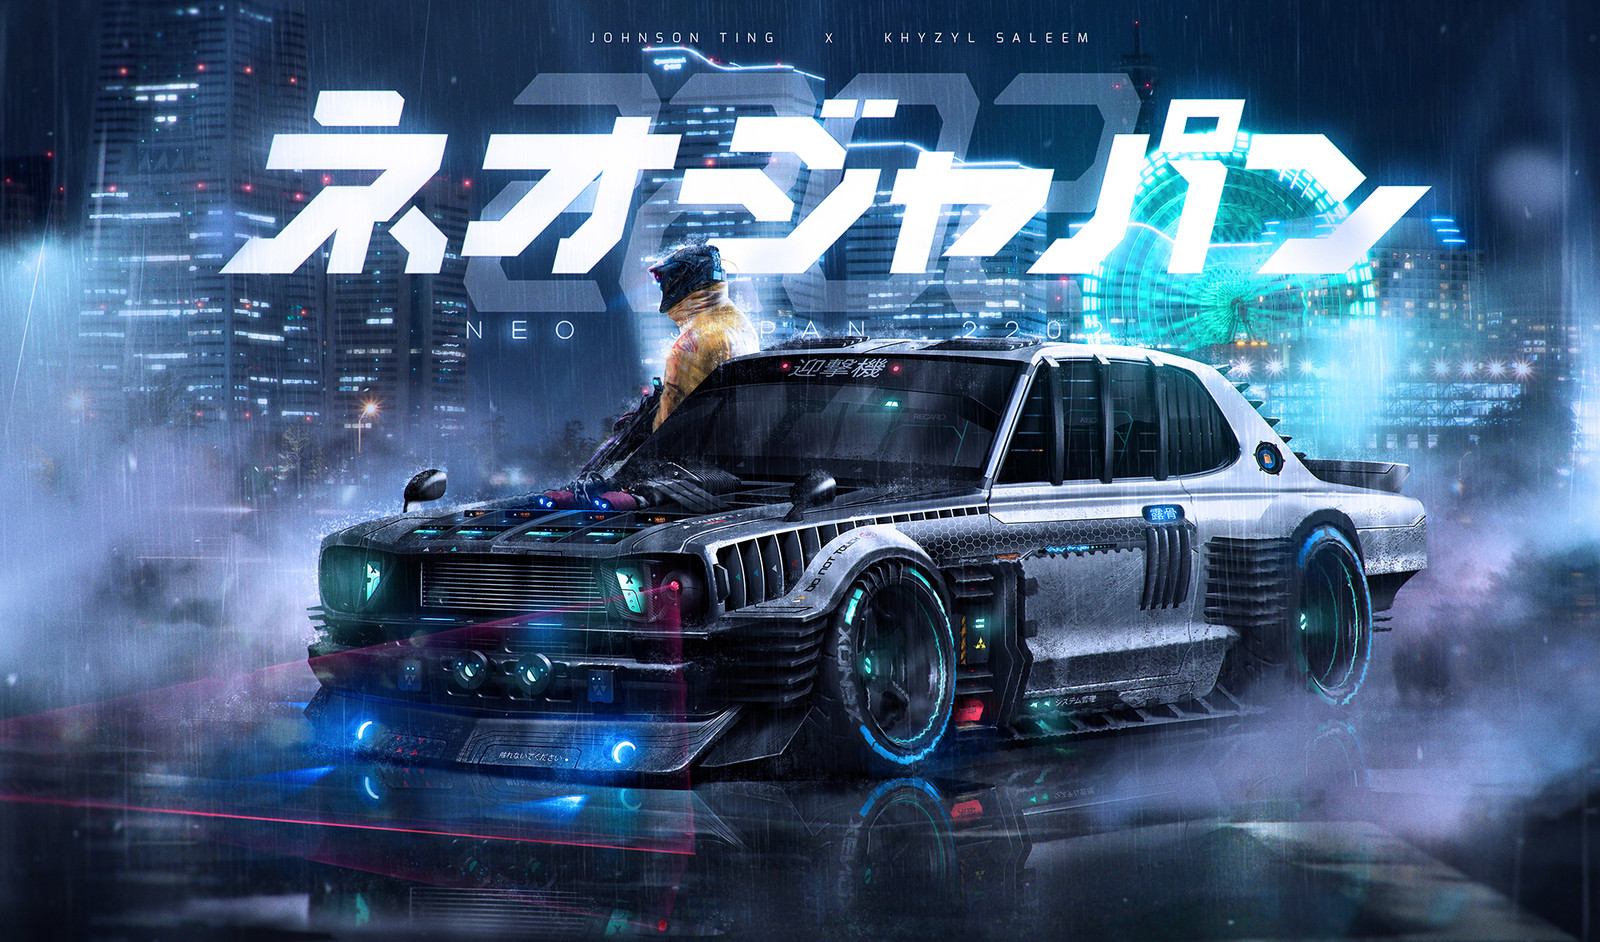 Neo Japan 2202 X Khyzyl Saleem - The interceptor